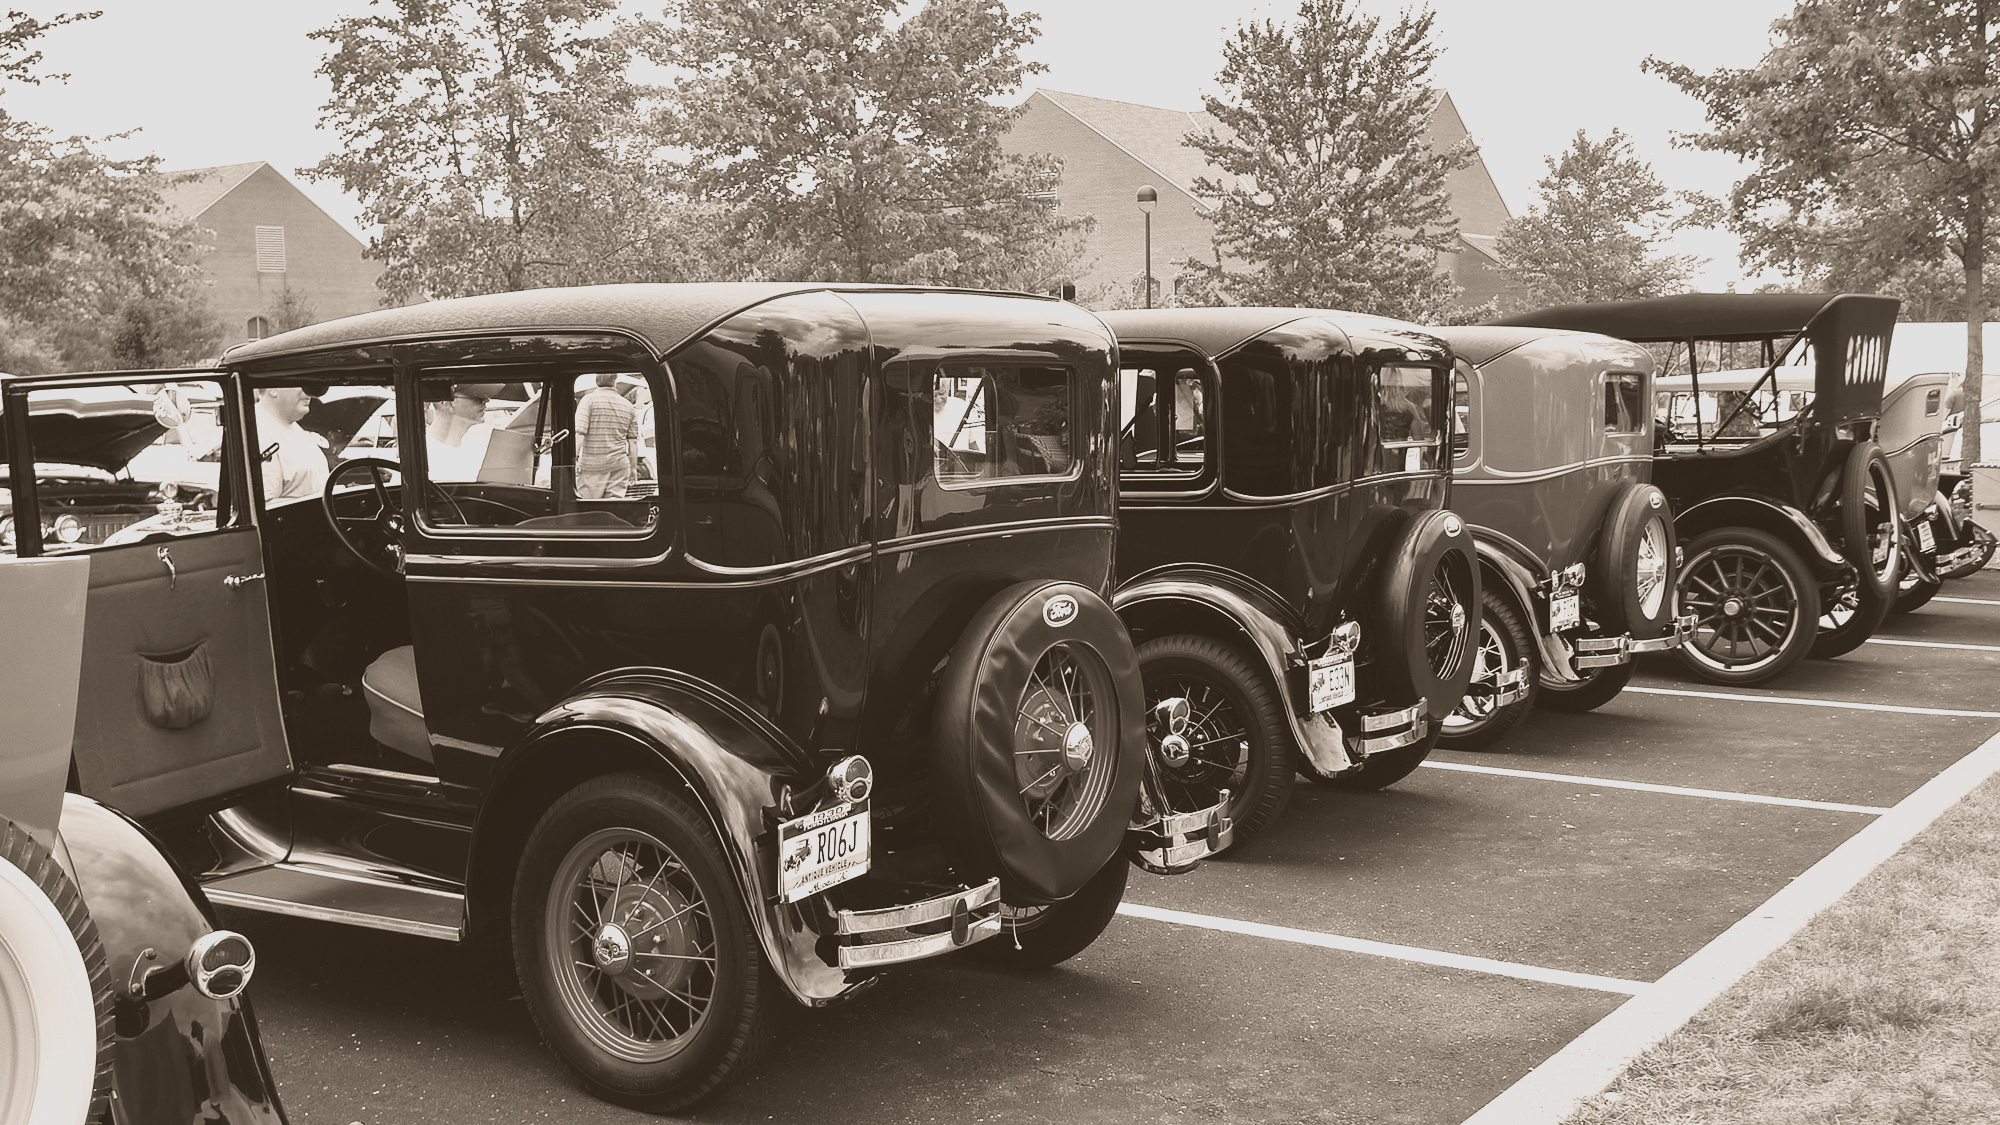 Model A cars in a line up from the rear